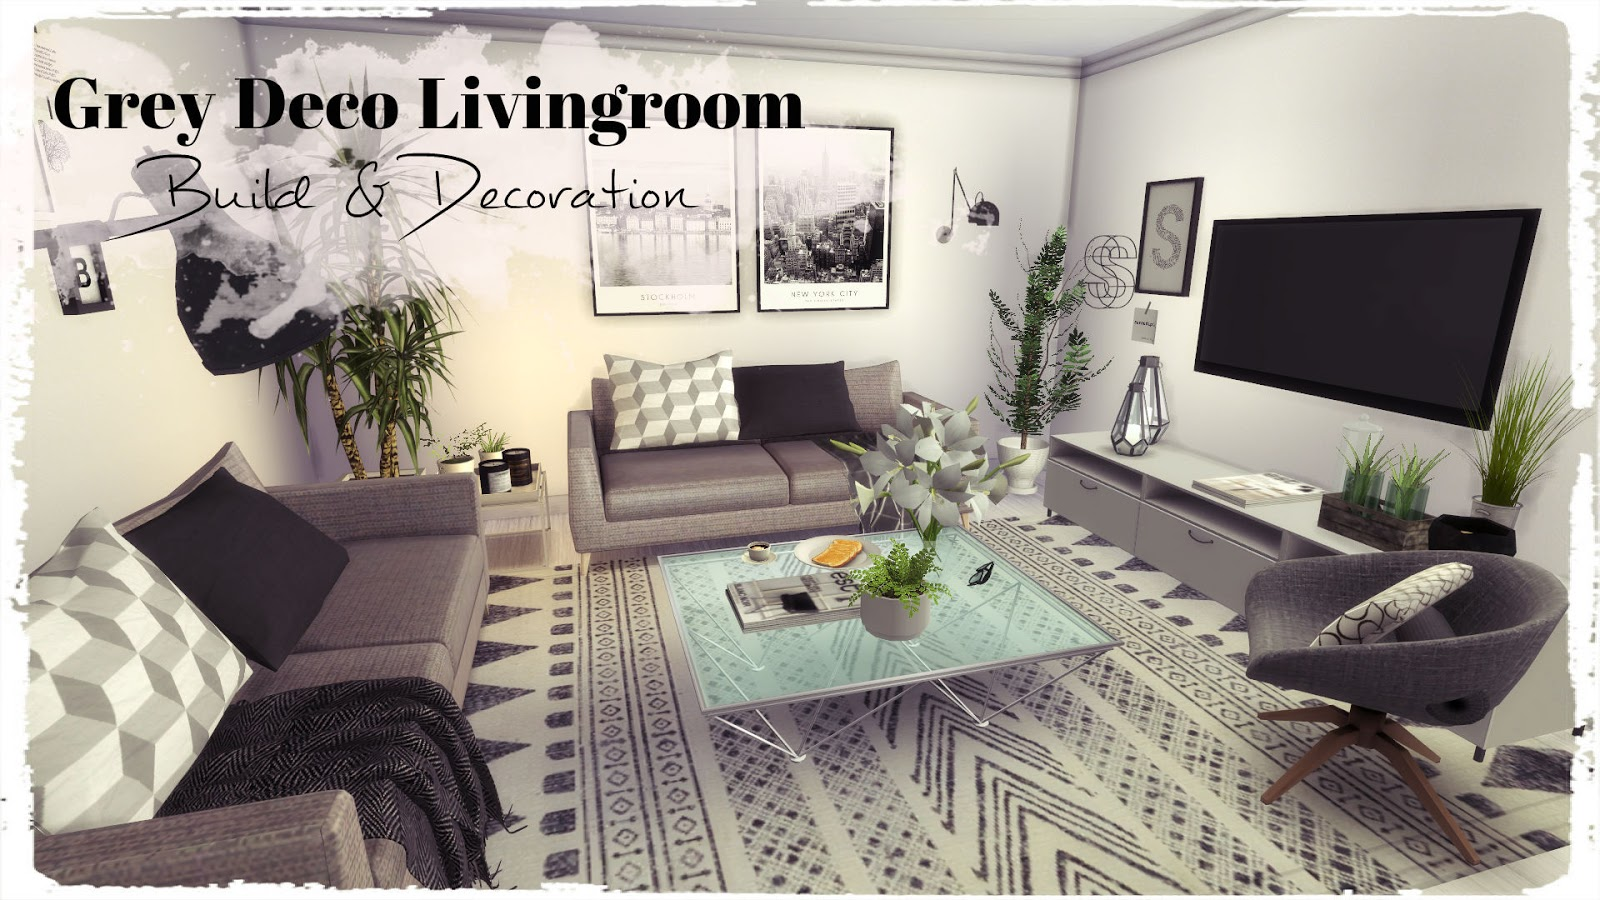 Sims 4 grey deco livingroom build decoration for for Deco appartement sims 4